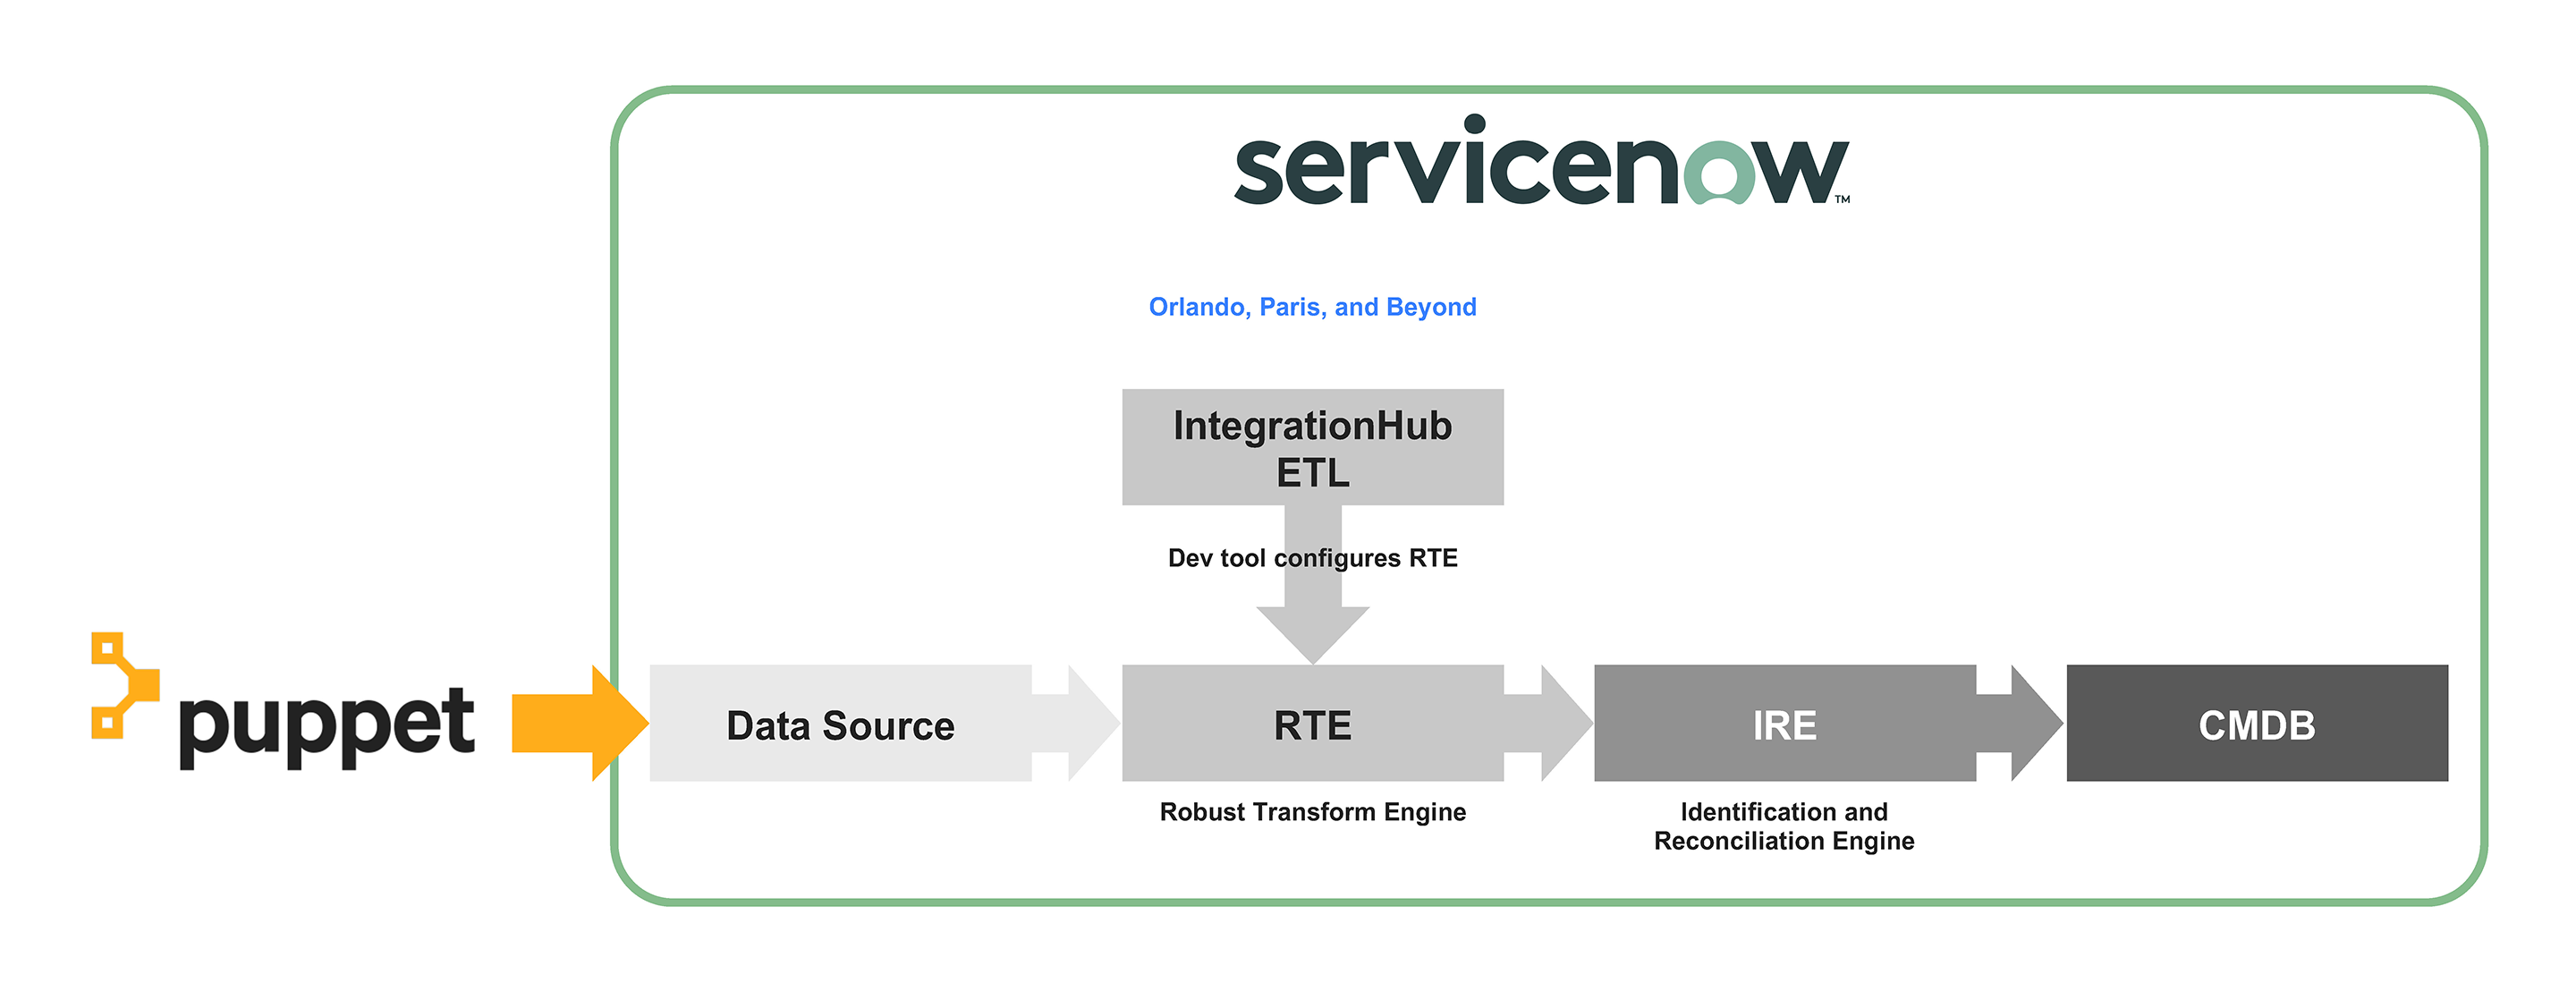 """Puppet to Data Source to RTE to IRE to CMDB, with ServiceNow in Orlando, Paris, Beyond to IntegrationHub ETL and """"Dev tool configures RTE"""" entering on RTE"""